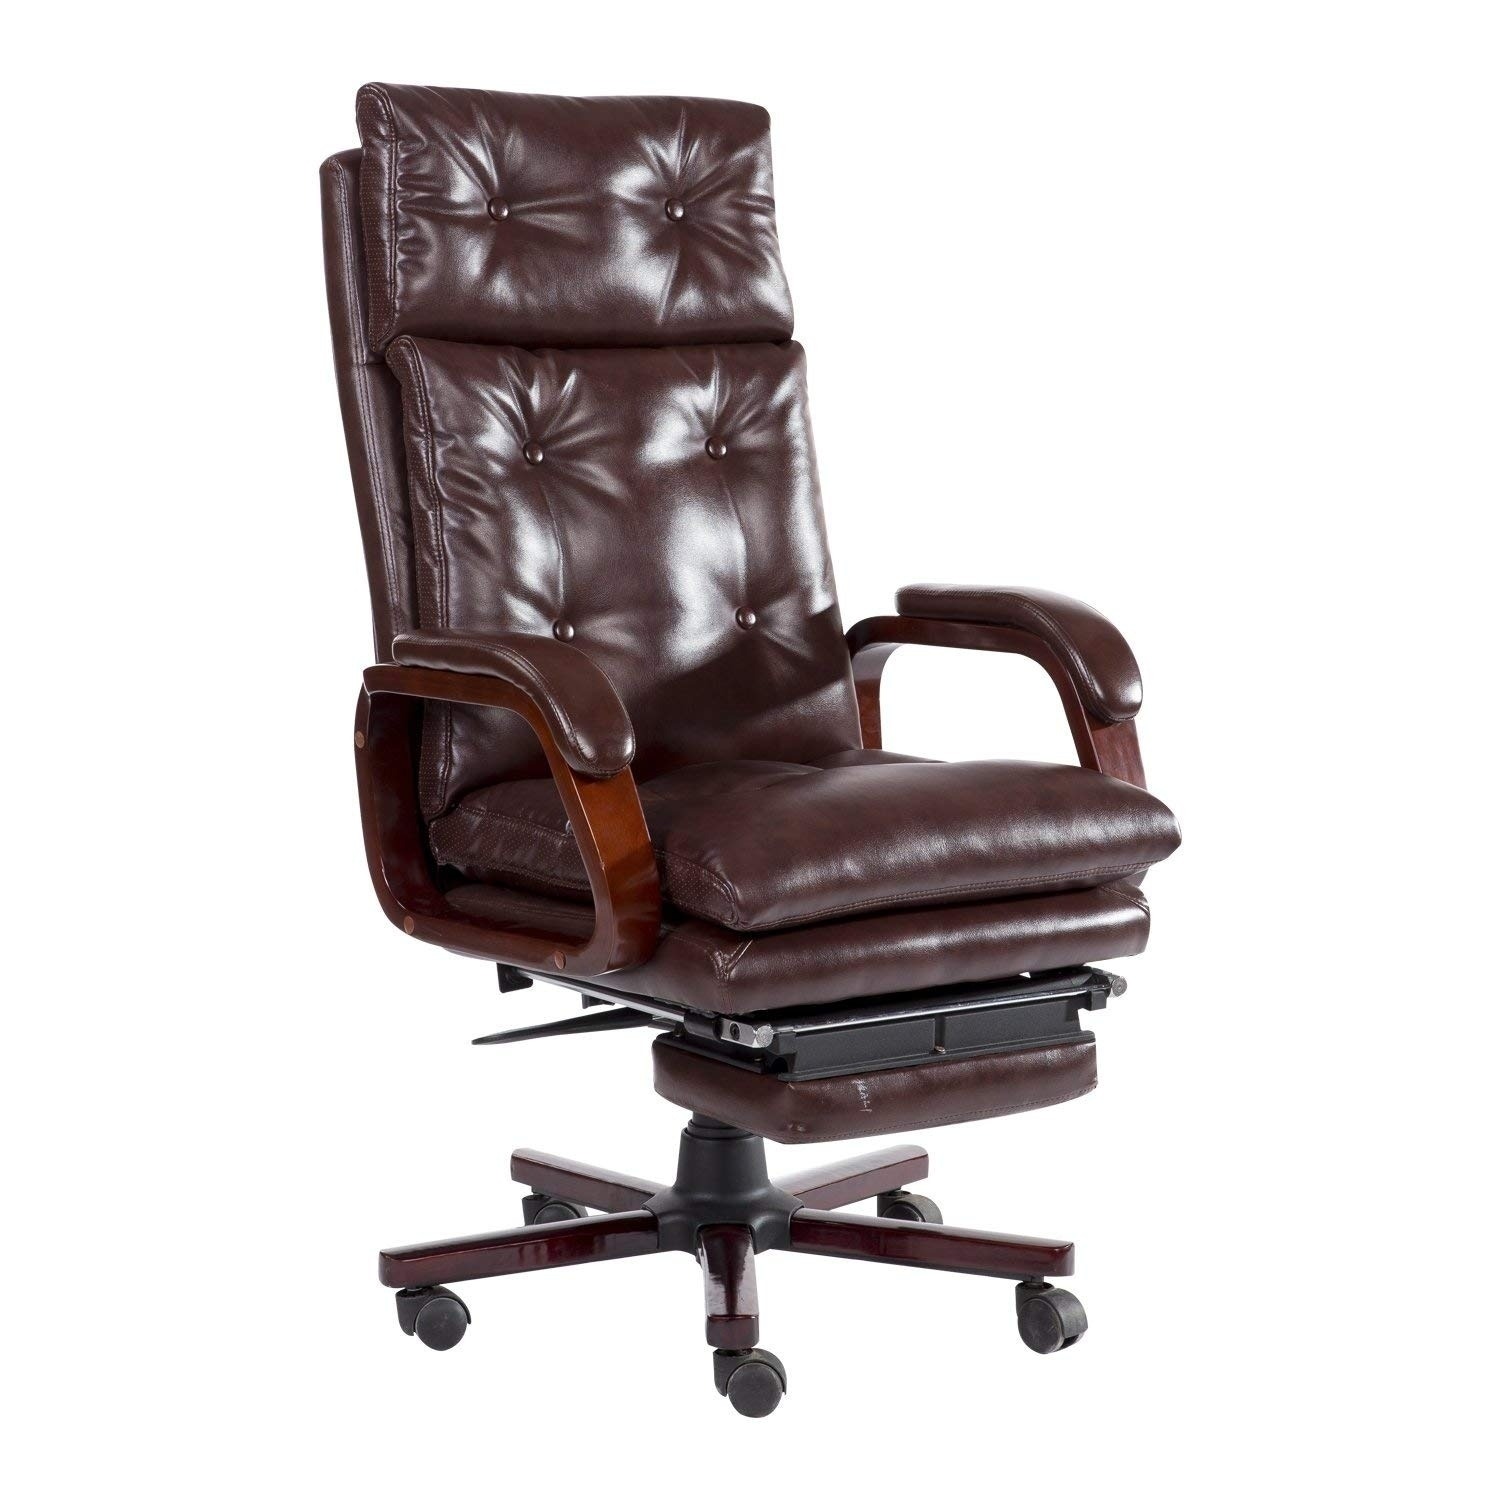 Shop HomCom High Back PU Leather Executive Reclining Home Office Chair With Retractable Footrest - Free Shipping Today - Overstock.com - 22404702  sc 1 st  Overstock.com & Shop HomCom High Back PU Leather Executive Reclining Home Office ...